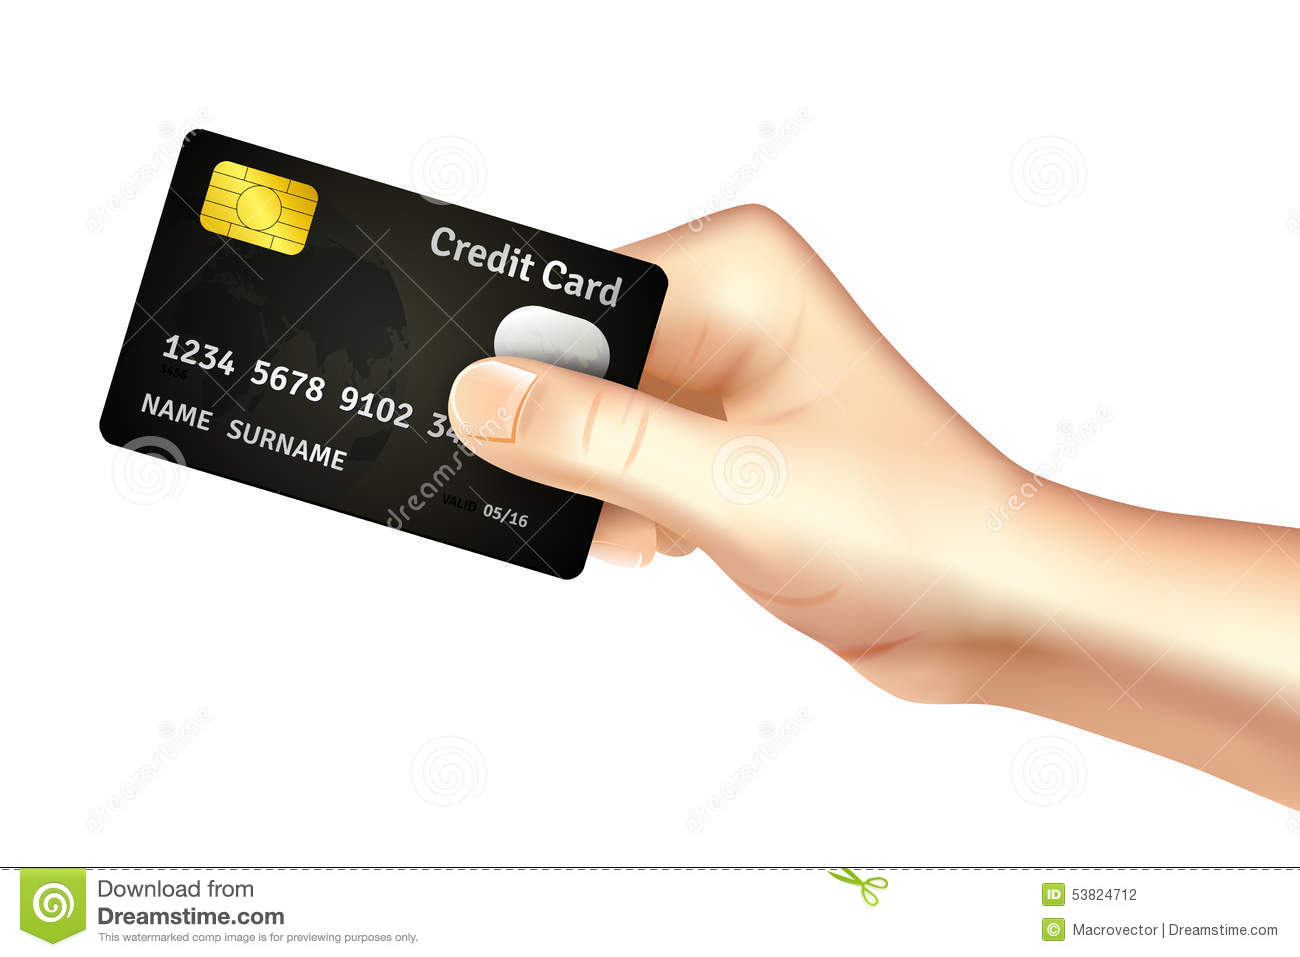 how to get cash money from a credit card